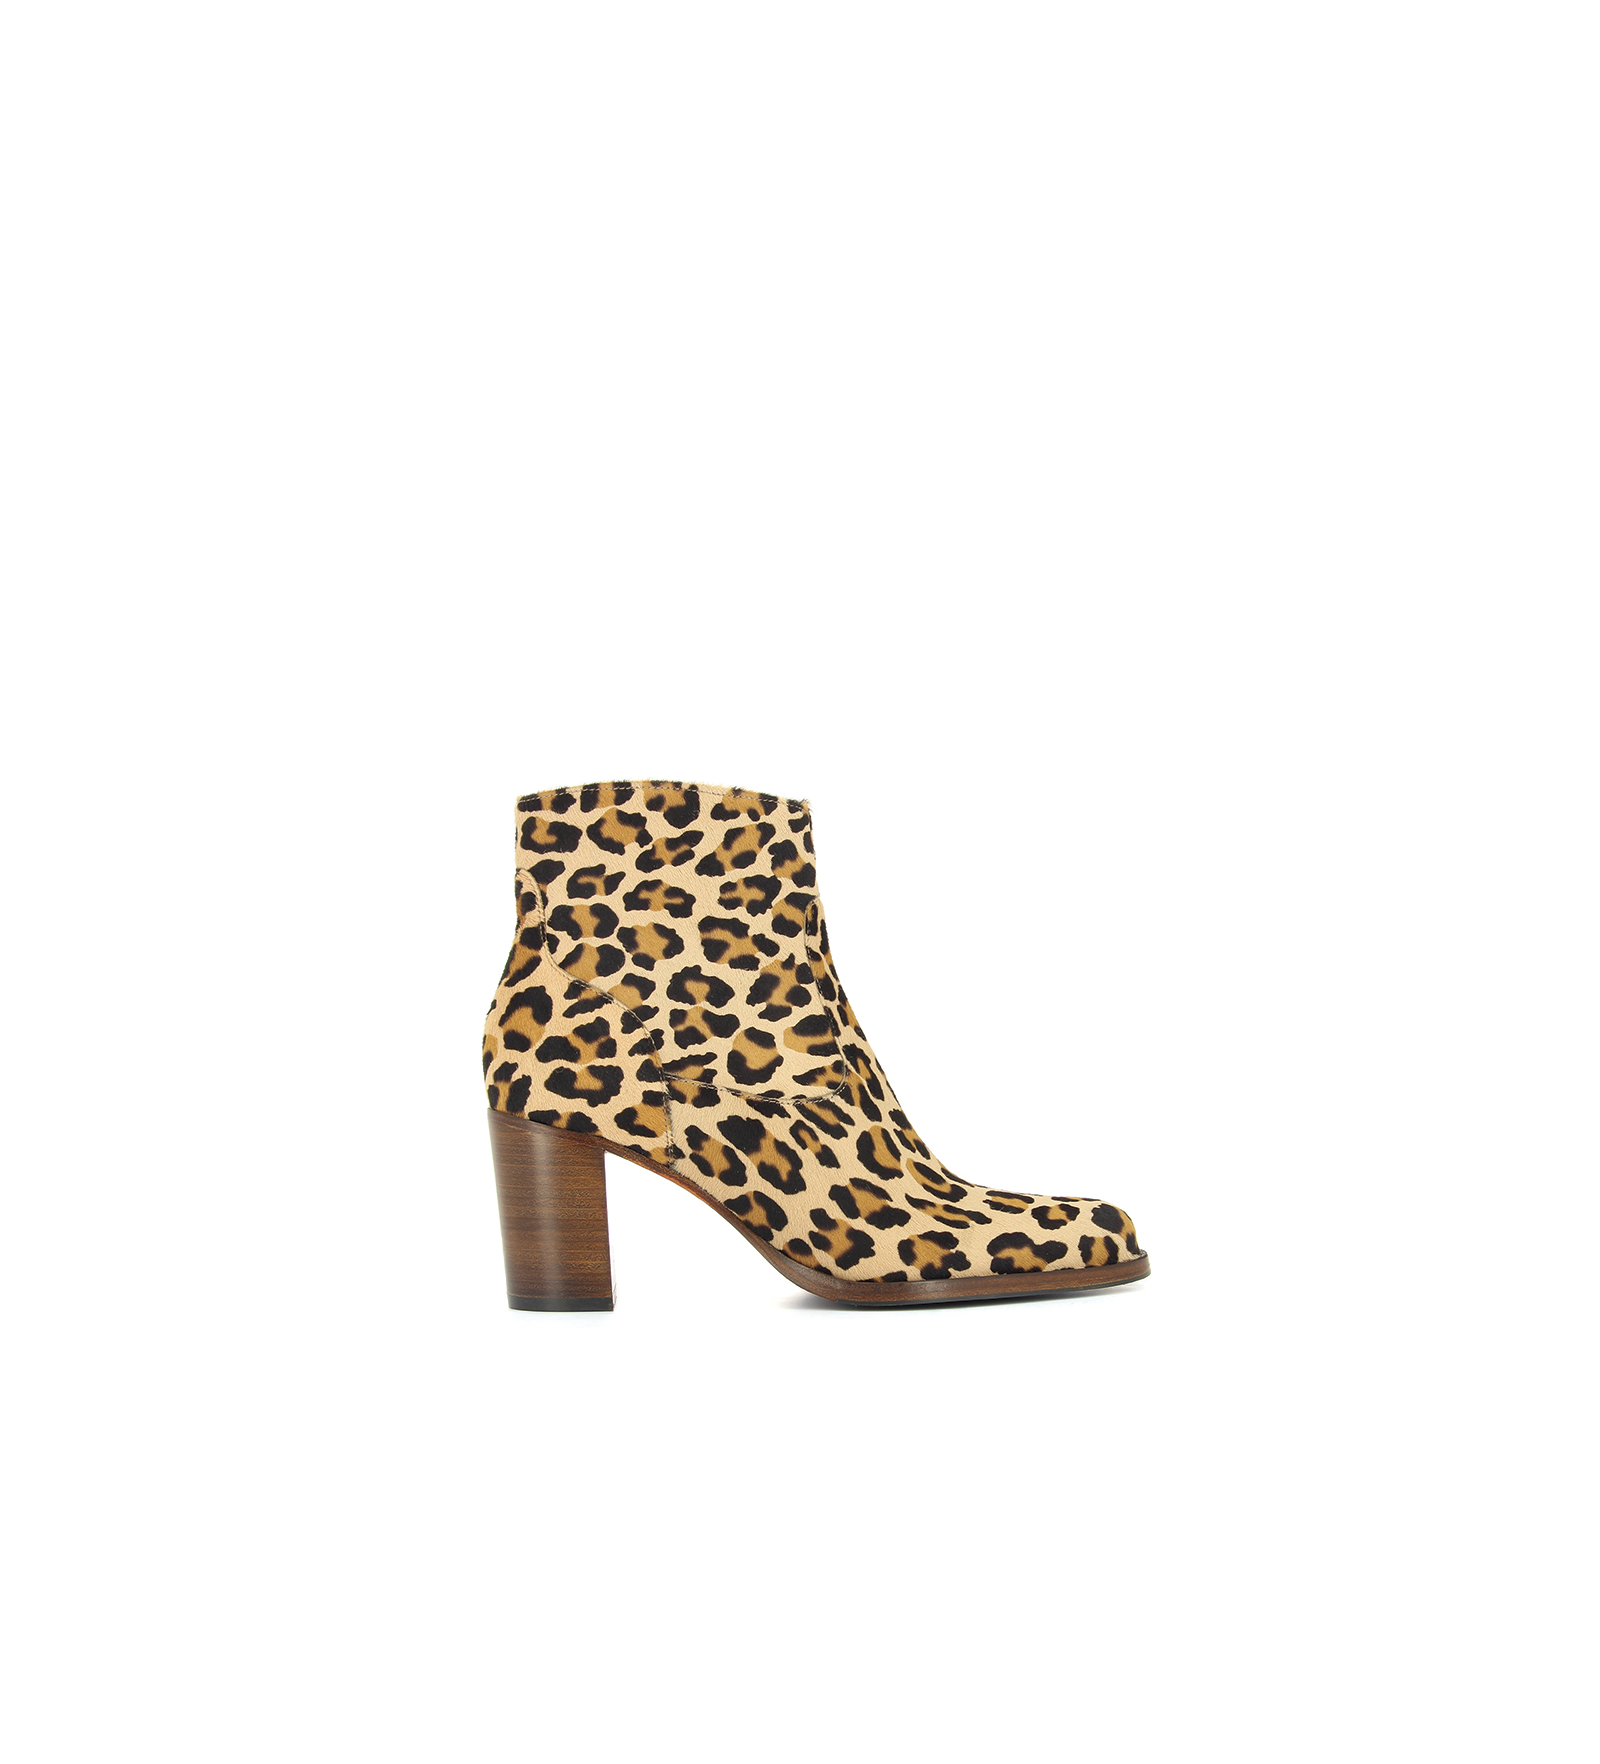 LEGEND 7 ZIP BOOT , PONY LEOPARD , NATUREL